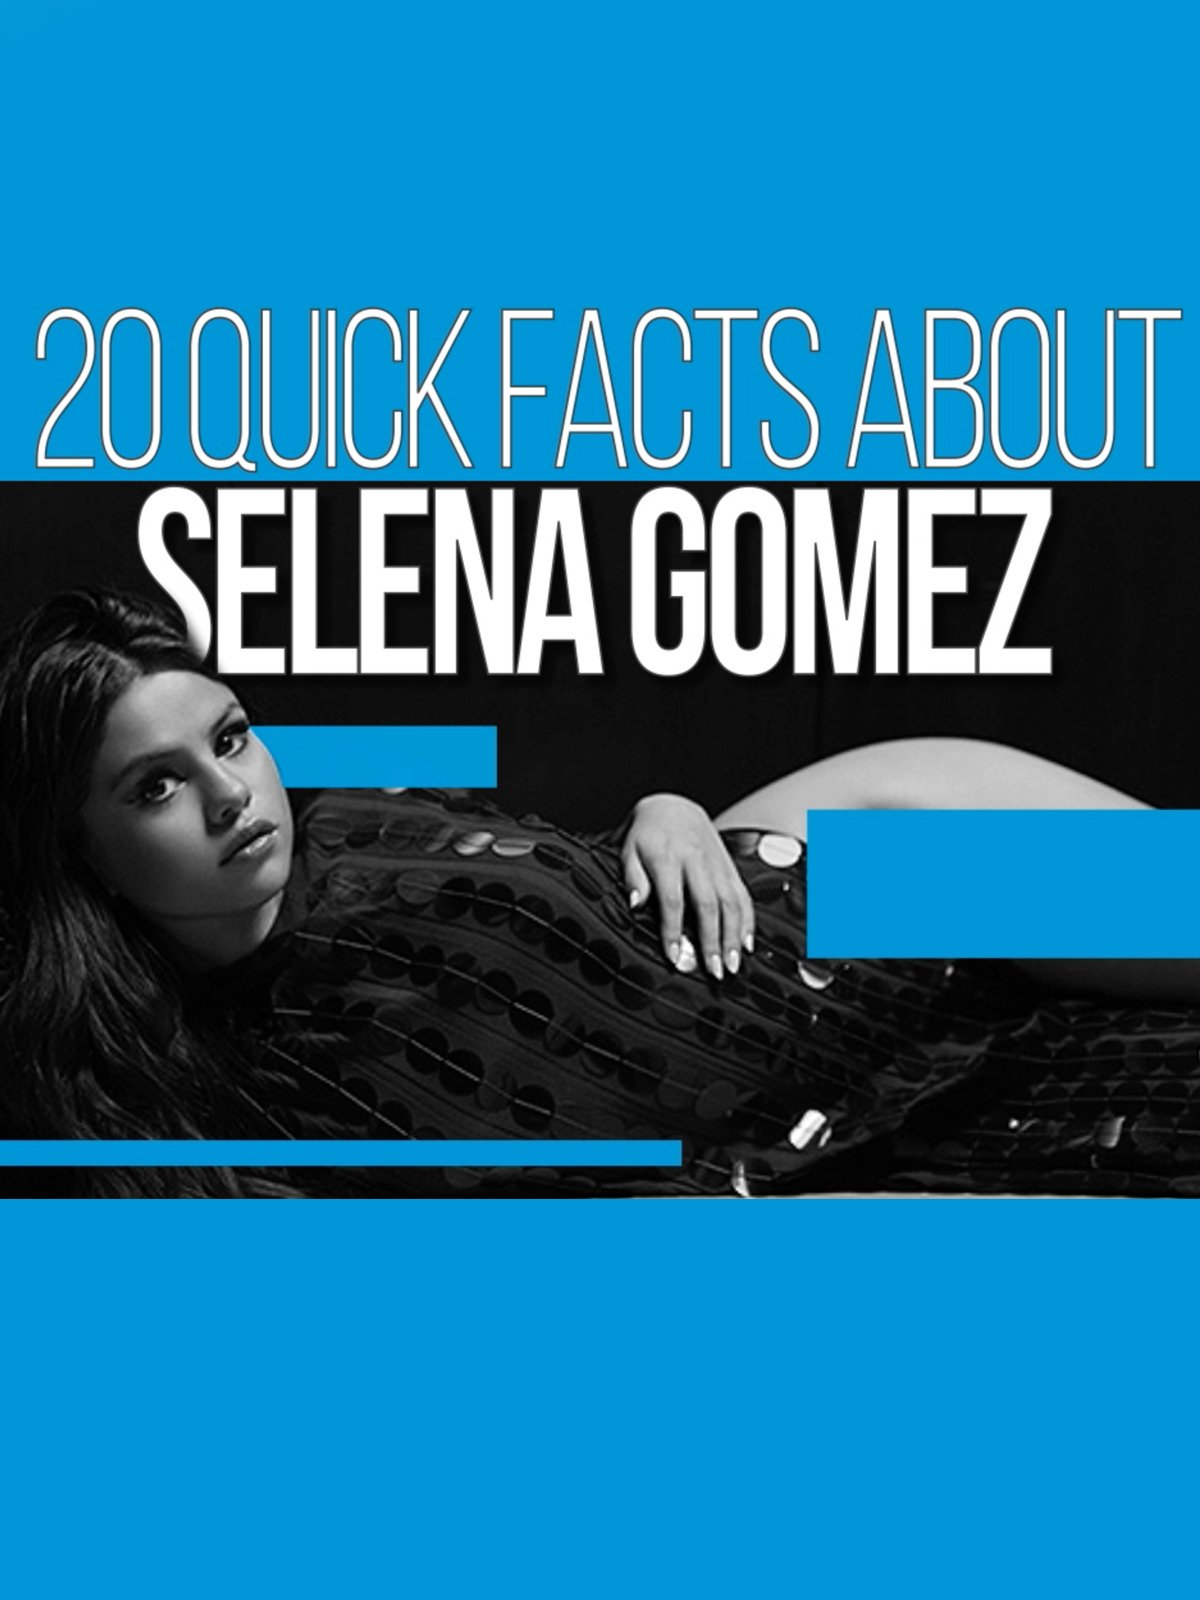 20 facts about Selena Gomez